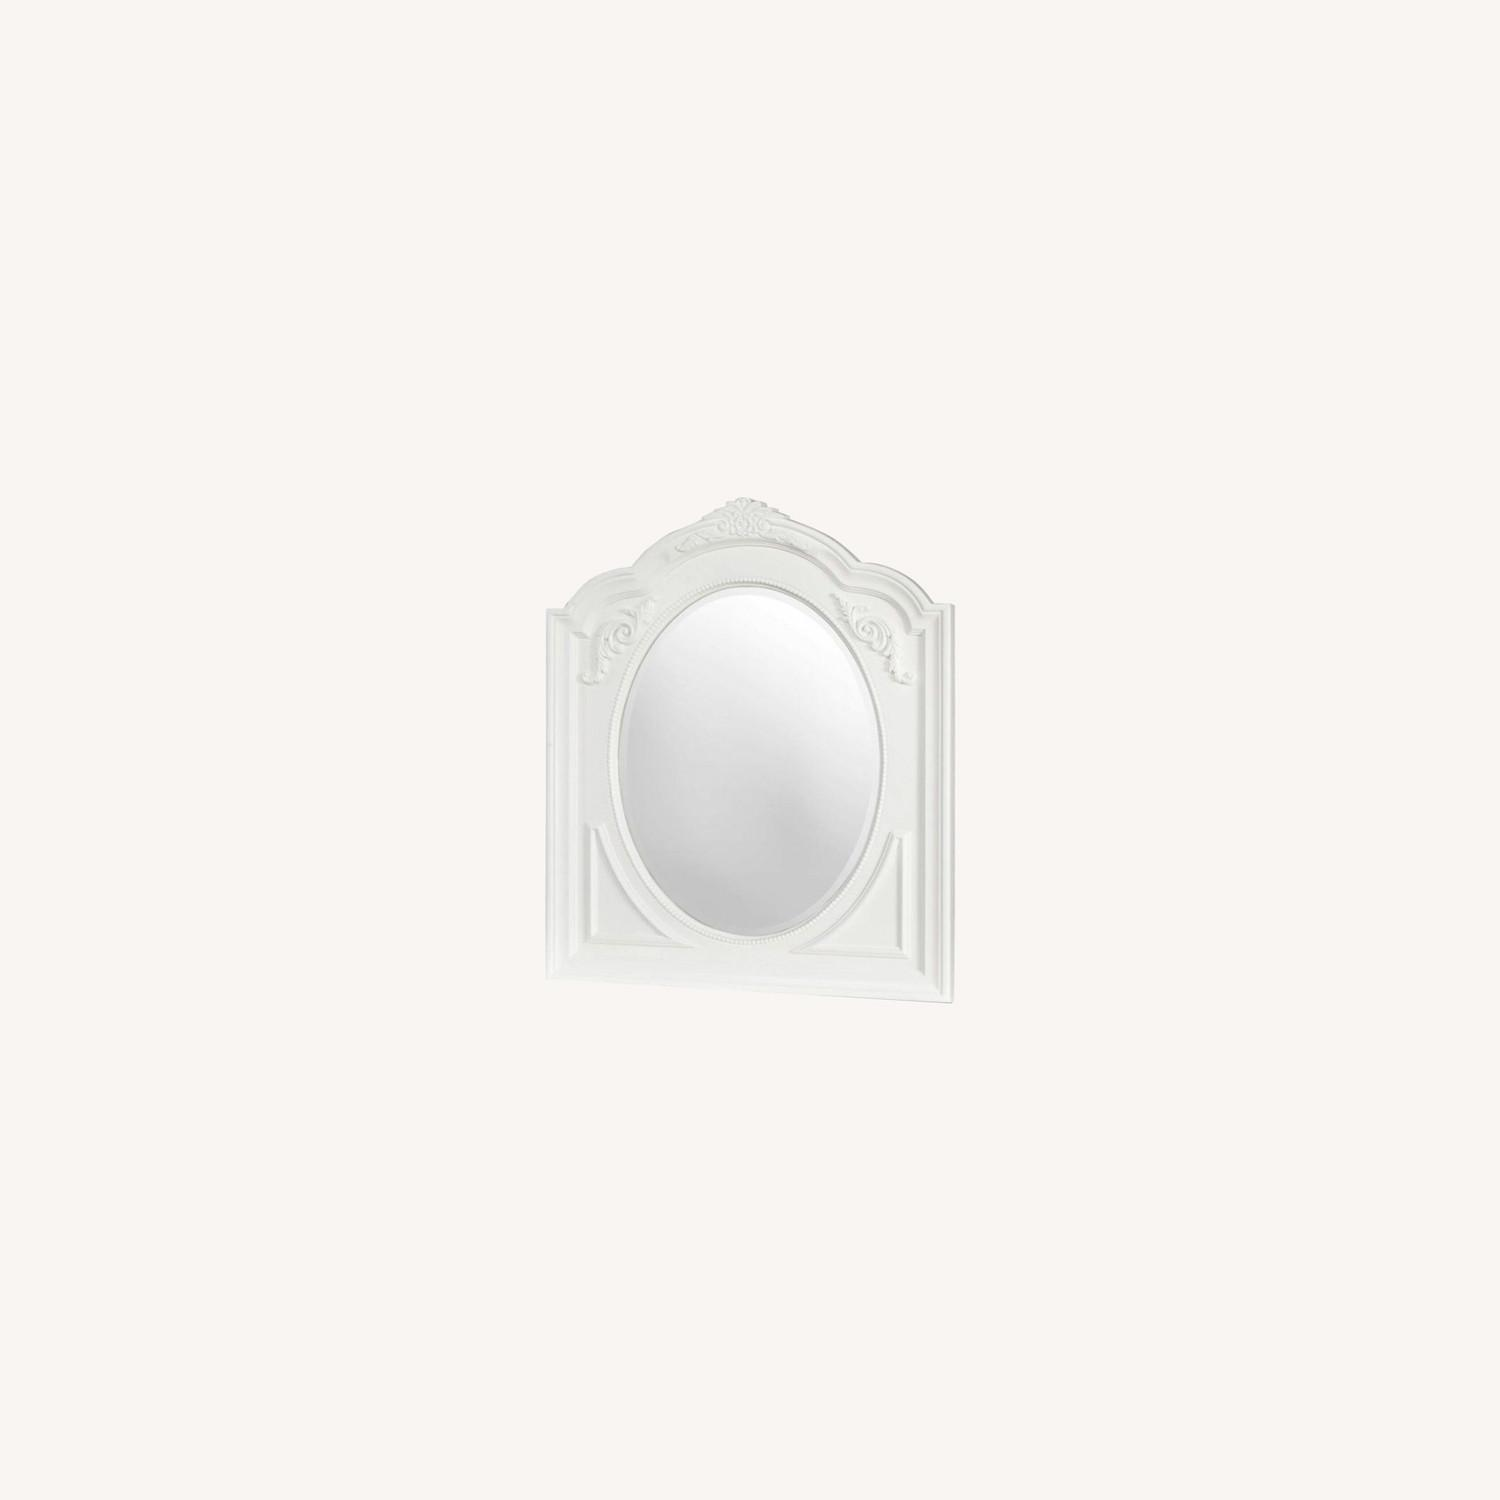 Opulent Style Mirror In White Frame Finish - image-4